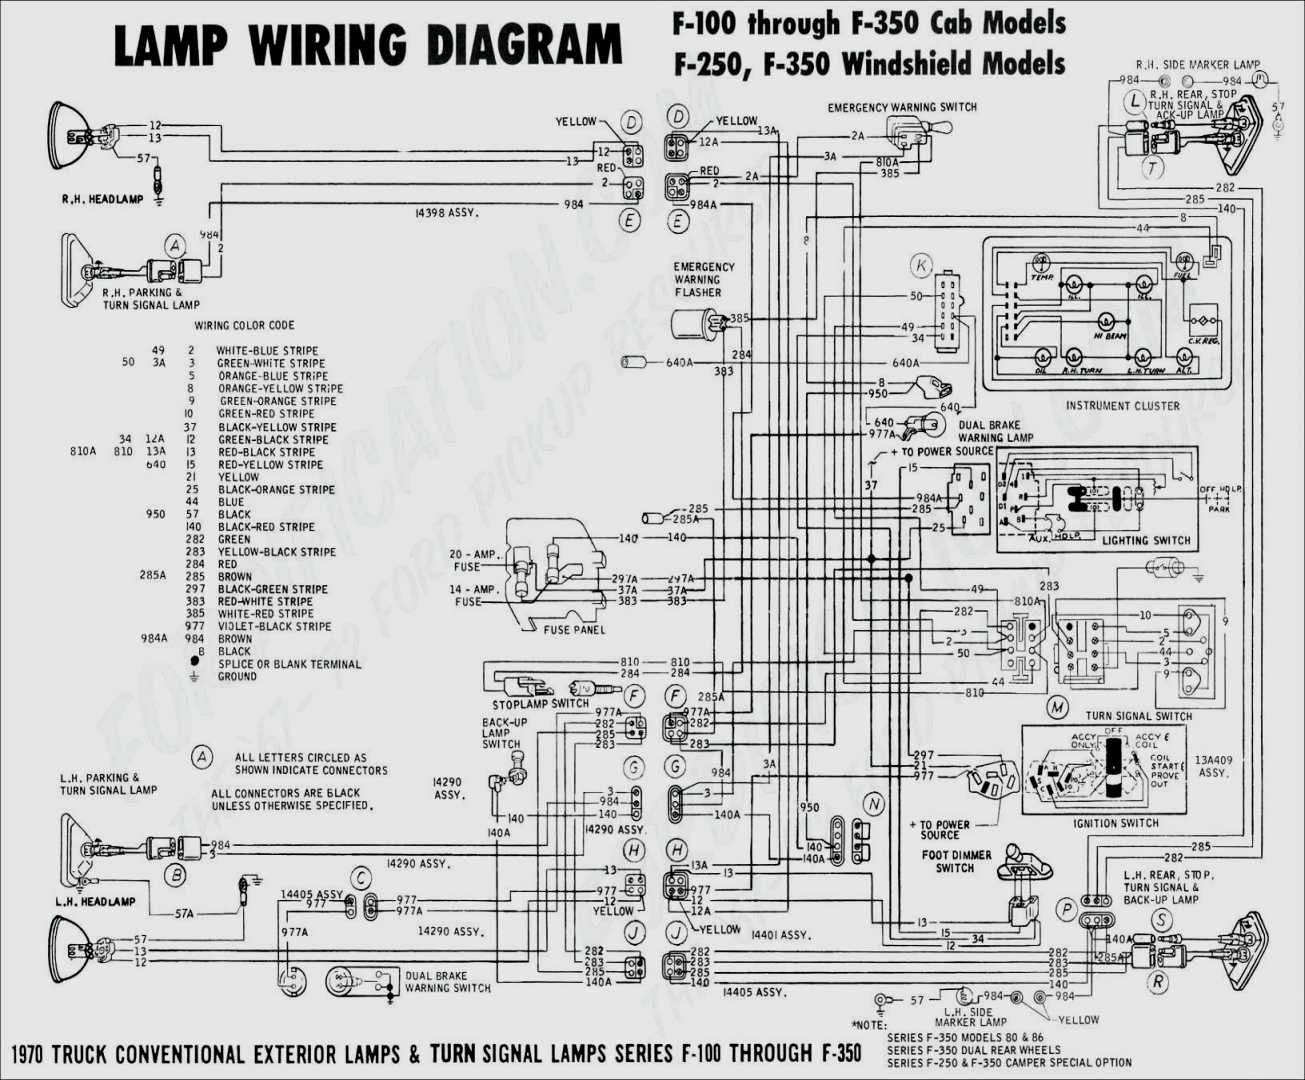 7 Pole Trailer Wiring Harness Way Plug Wiring Diagram Wiring - 7 Pole Trailer Wiring Diagram